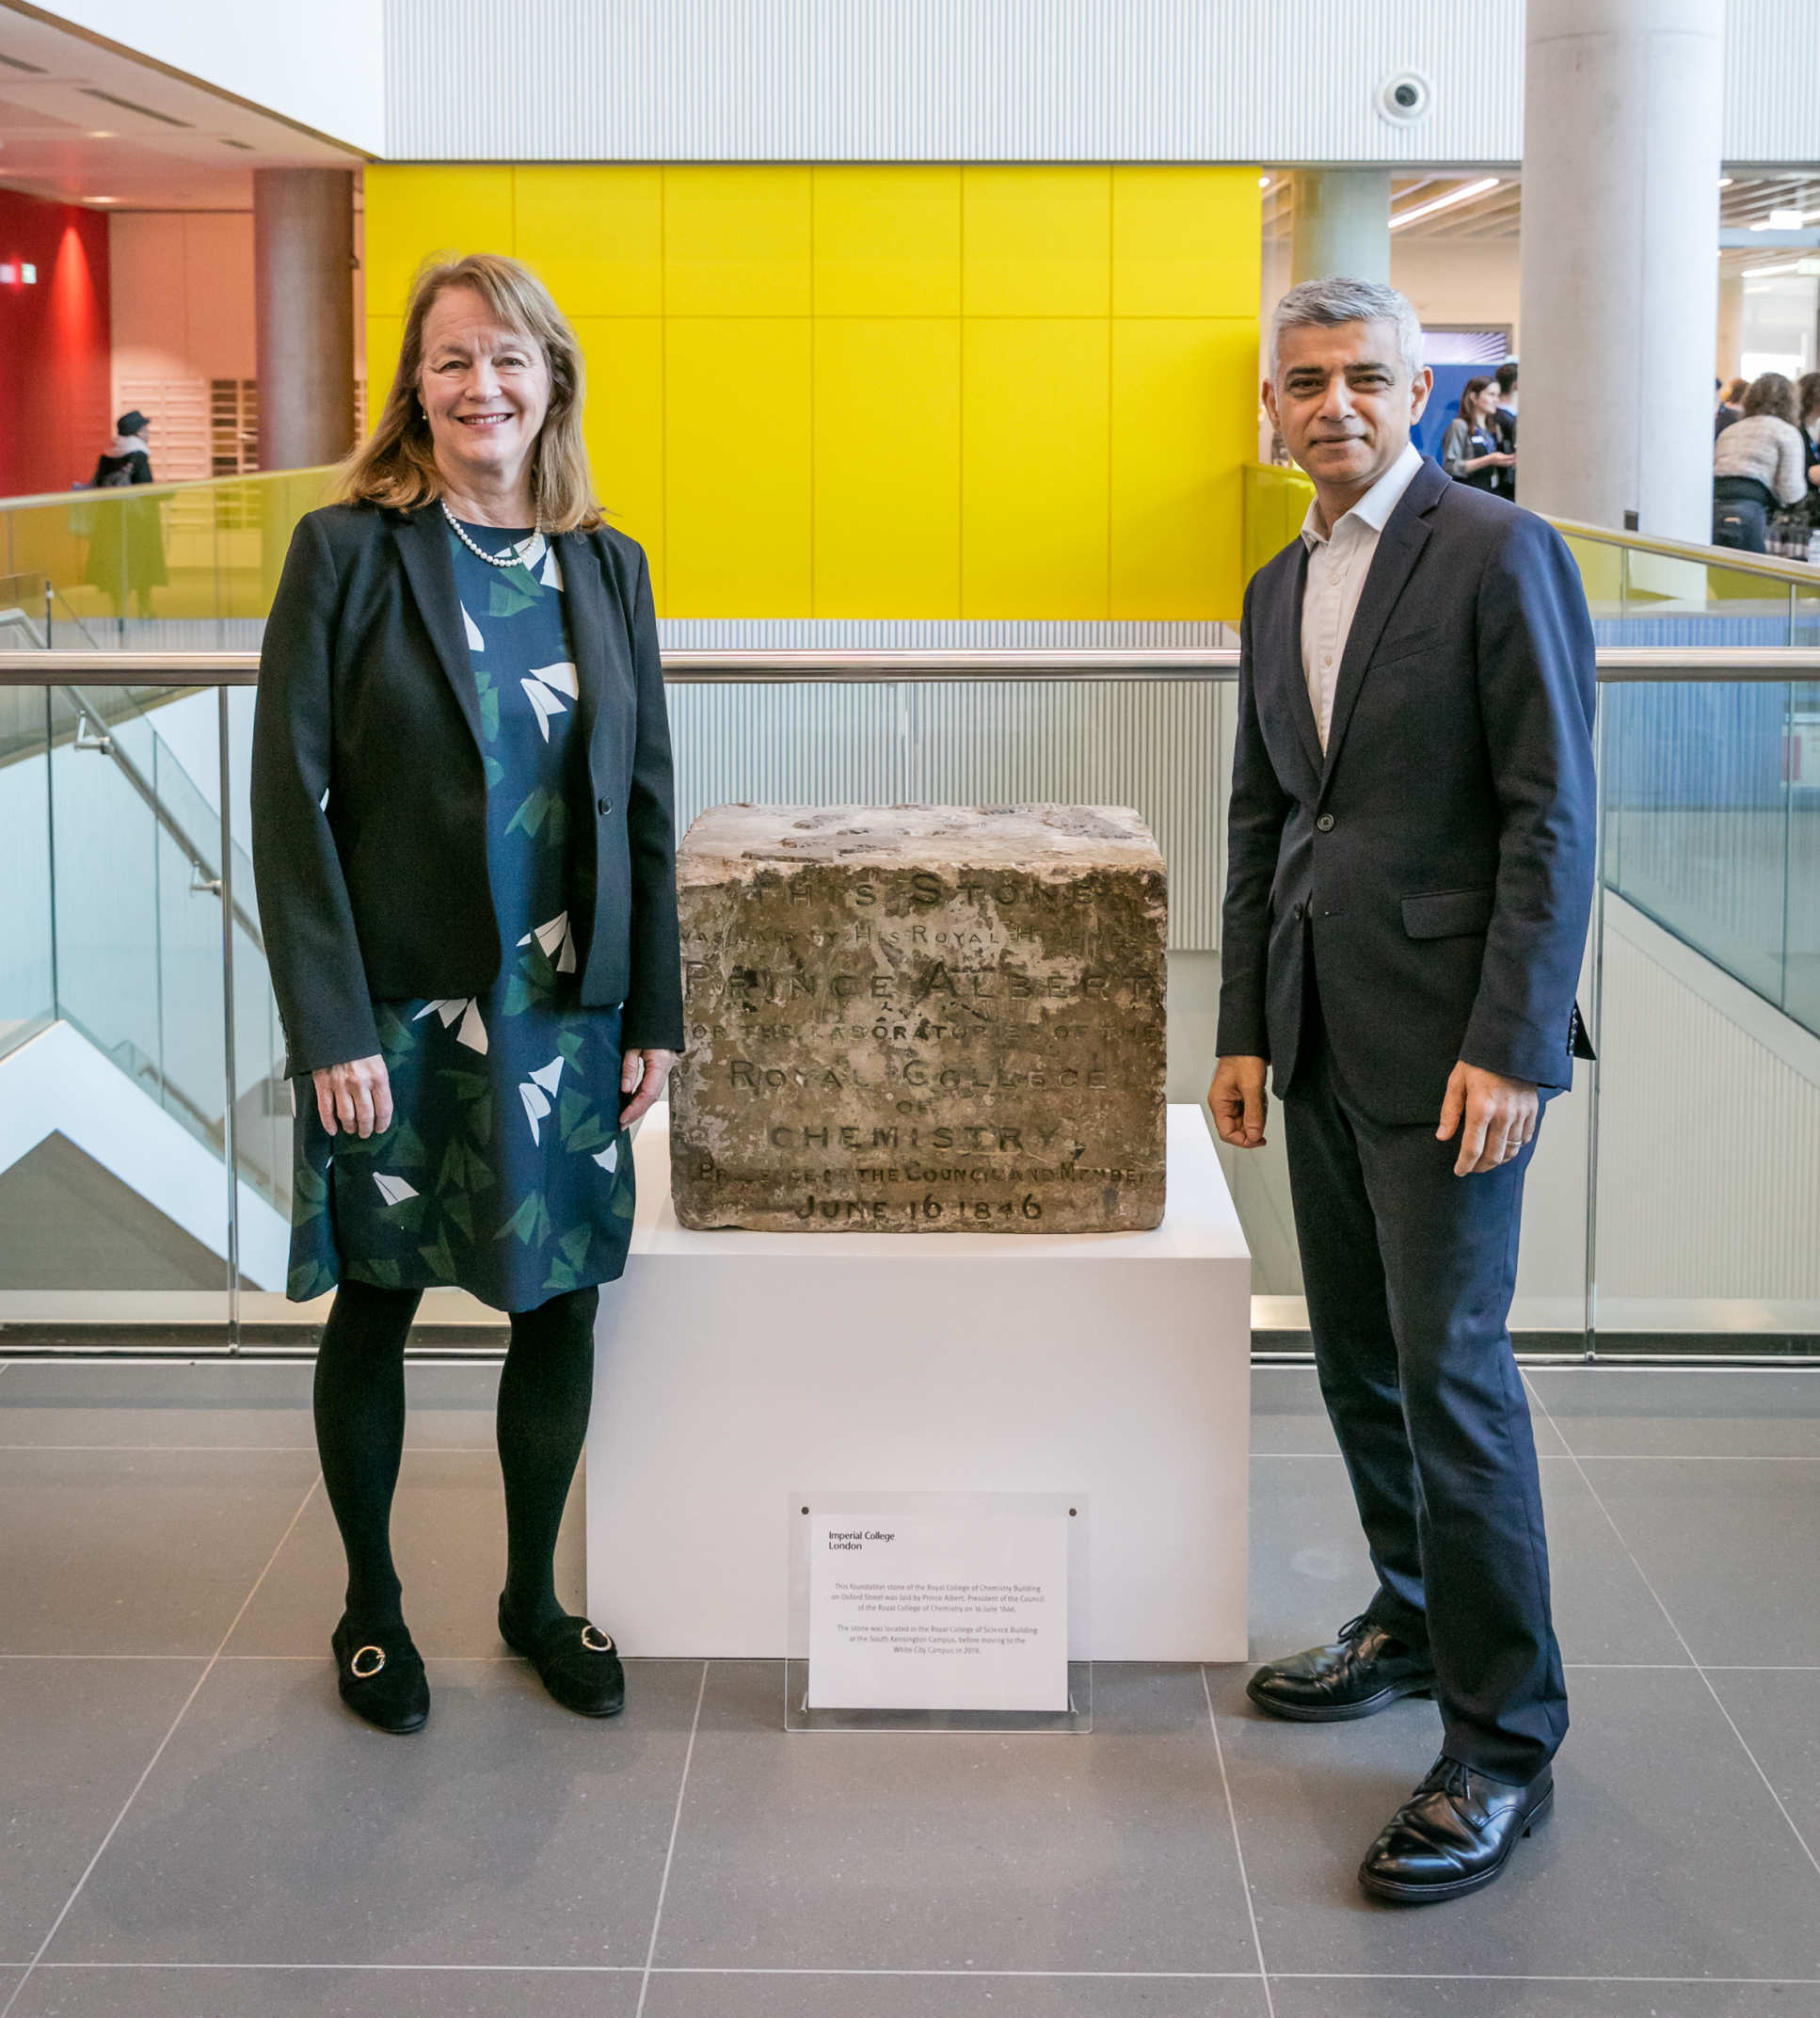 President Alice Gast and Mayor Sadiq Khan with Prince Albert's original Royal College of Chemistry foundation stone